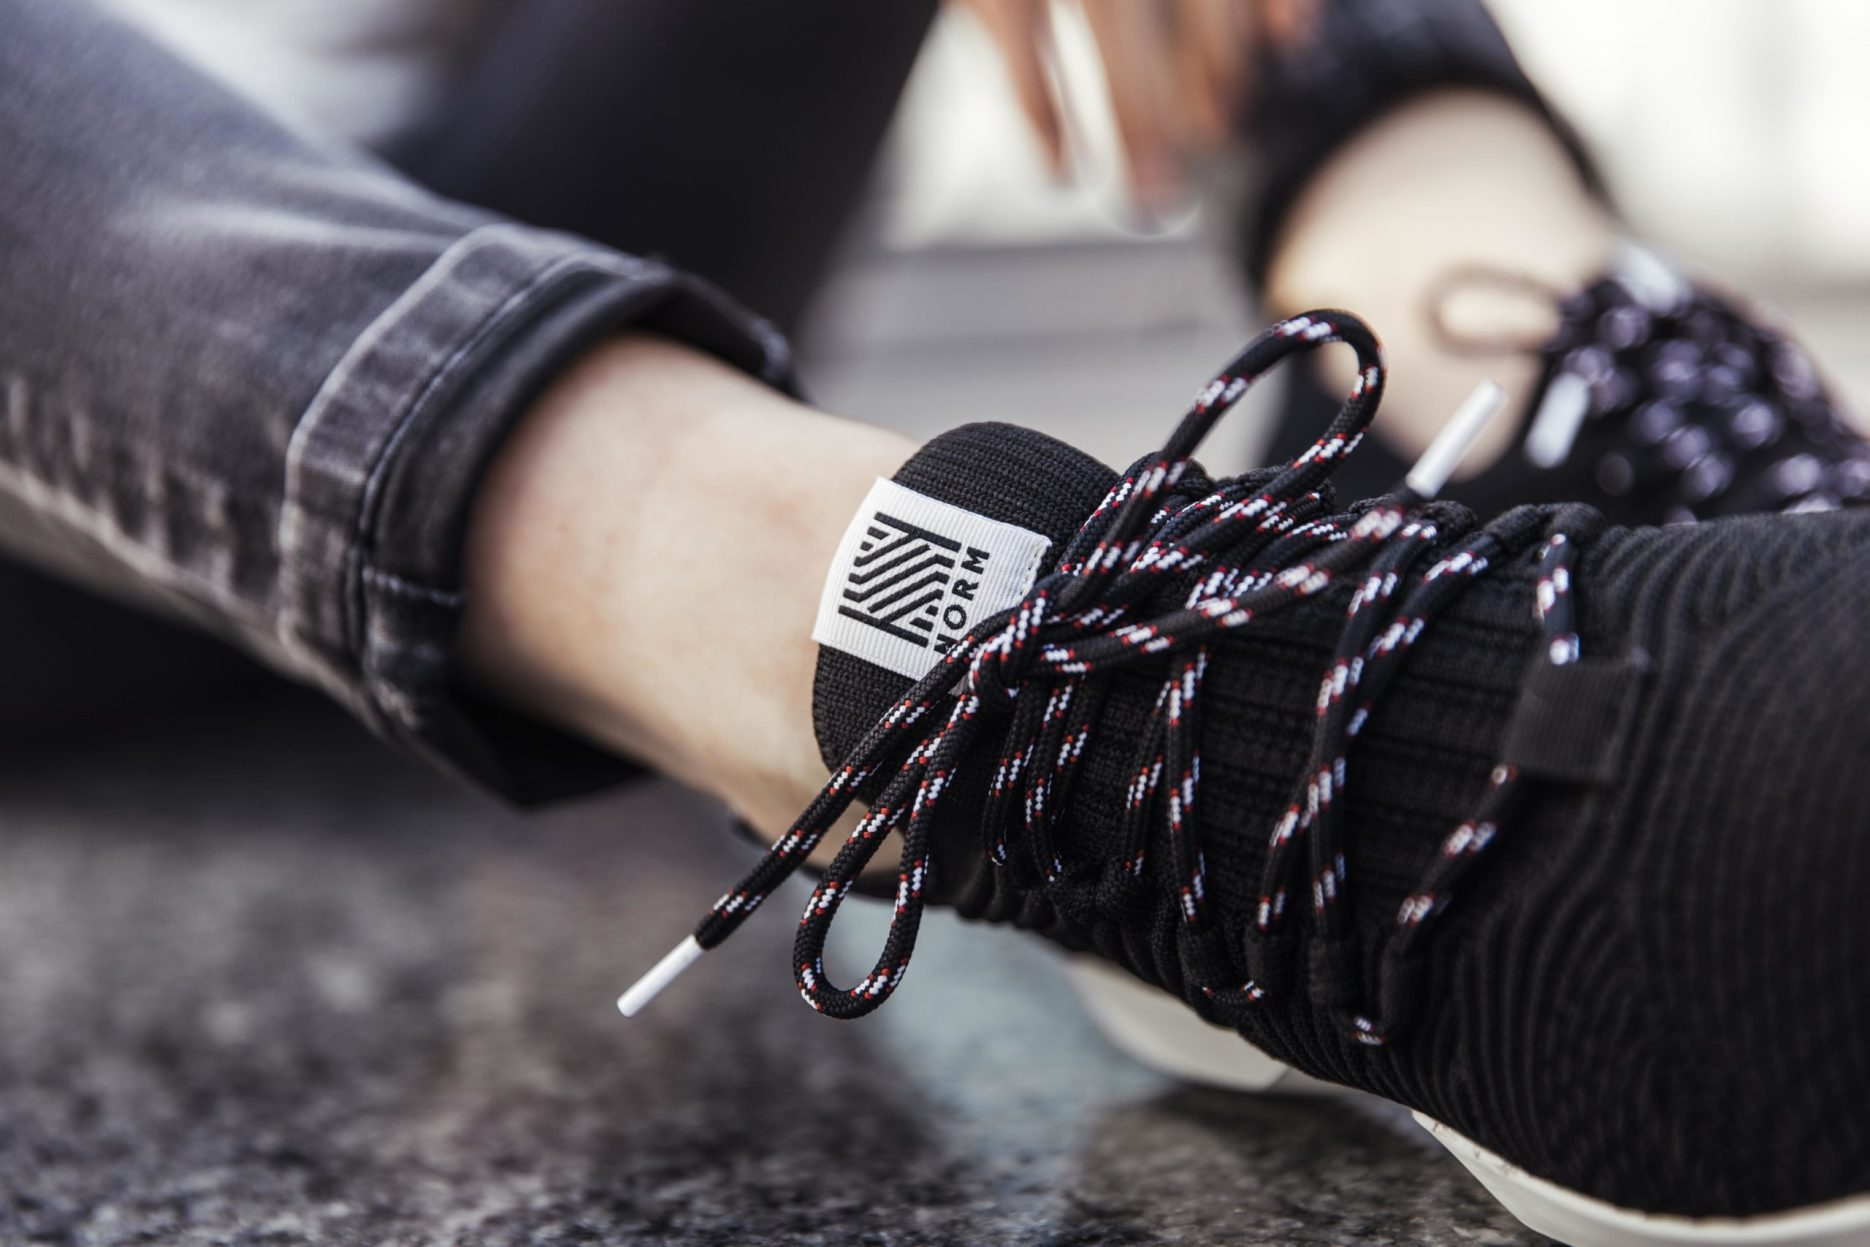 Let's talk about sneakers! An Eco Fashion Interview with Nicolas Lavigna from NORM